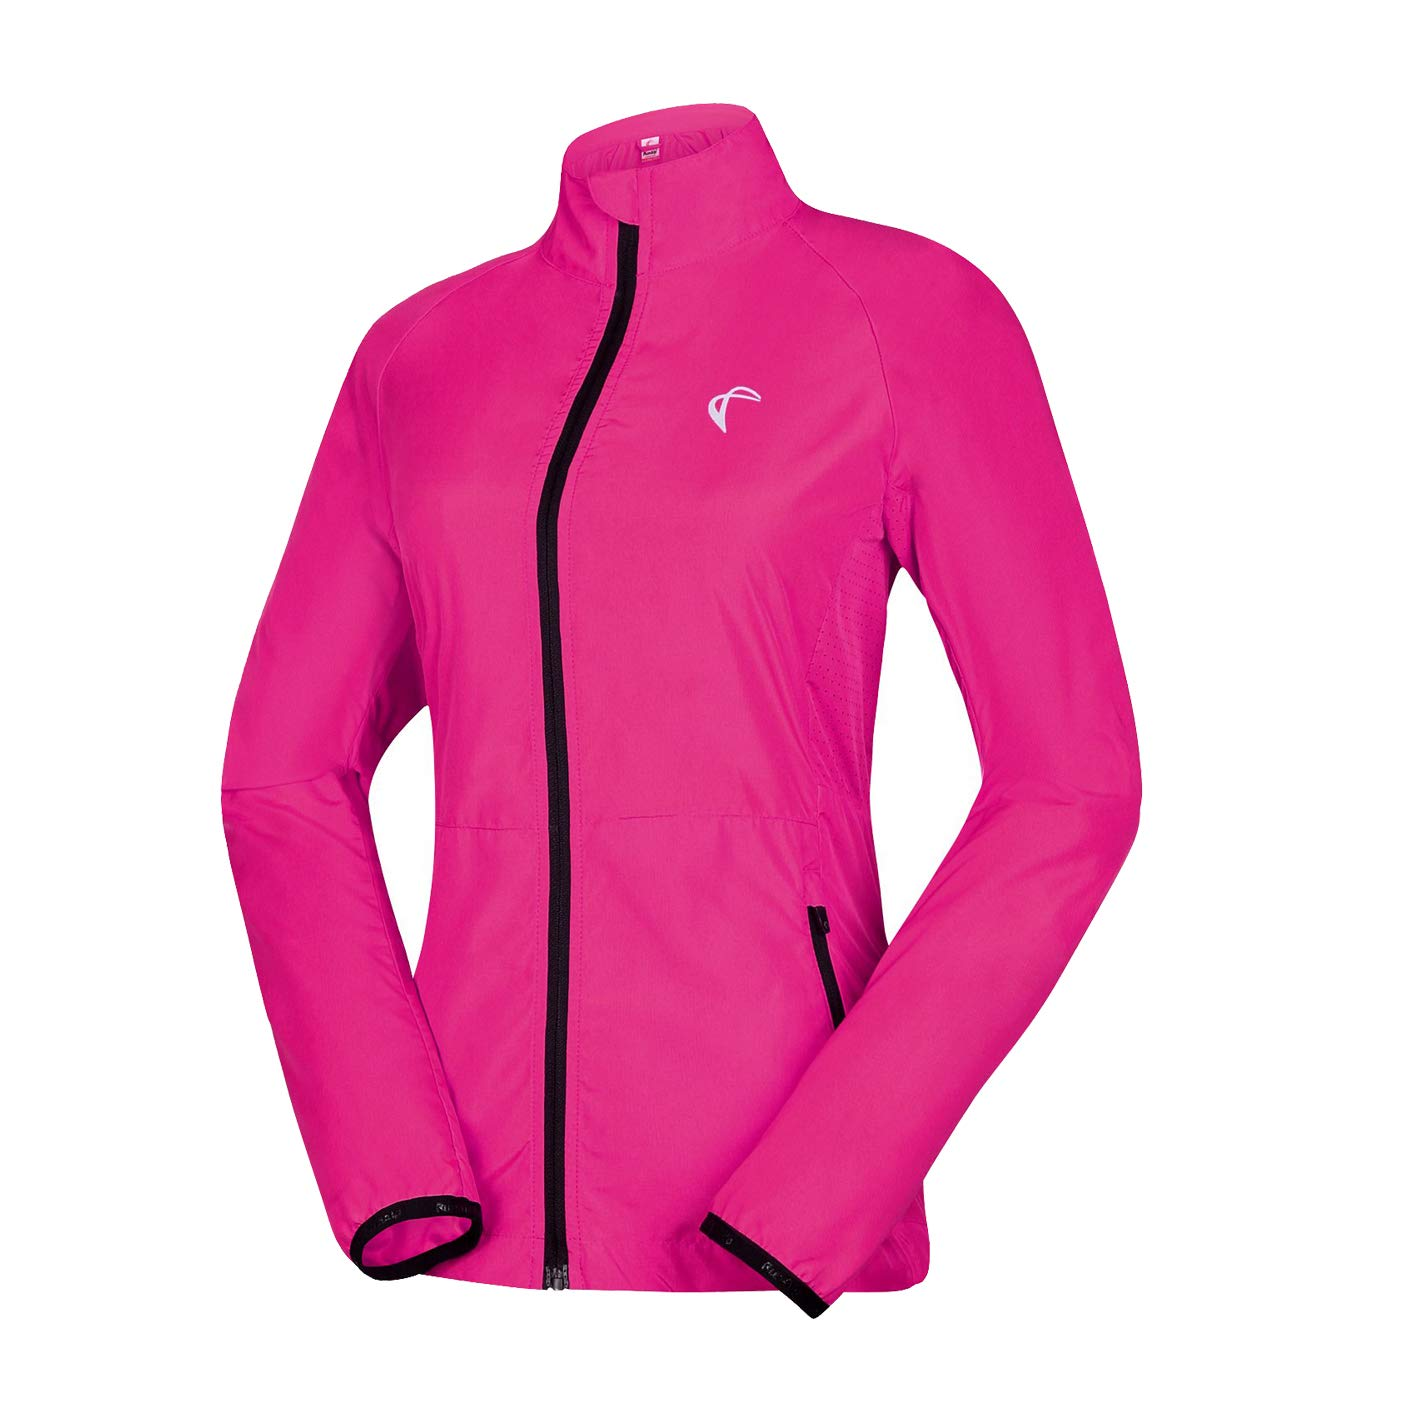 J.CARP Women's Packable Windbreaker Jacket, Super Lightweight and Visible, Outdoor Active Cycling Running Skin Coat, Rose Red XL by J.CARP